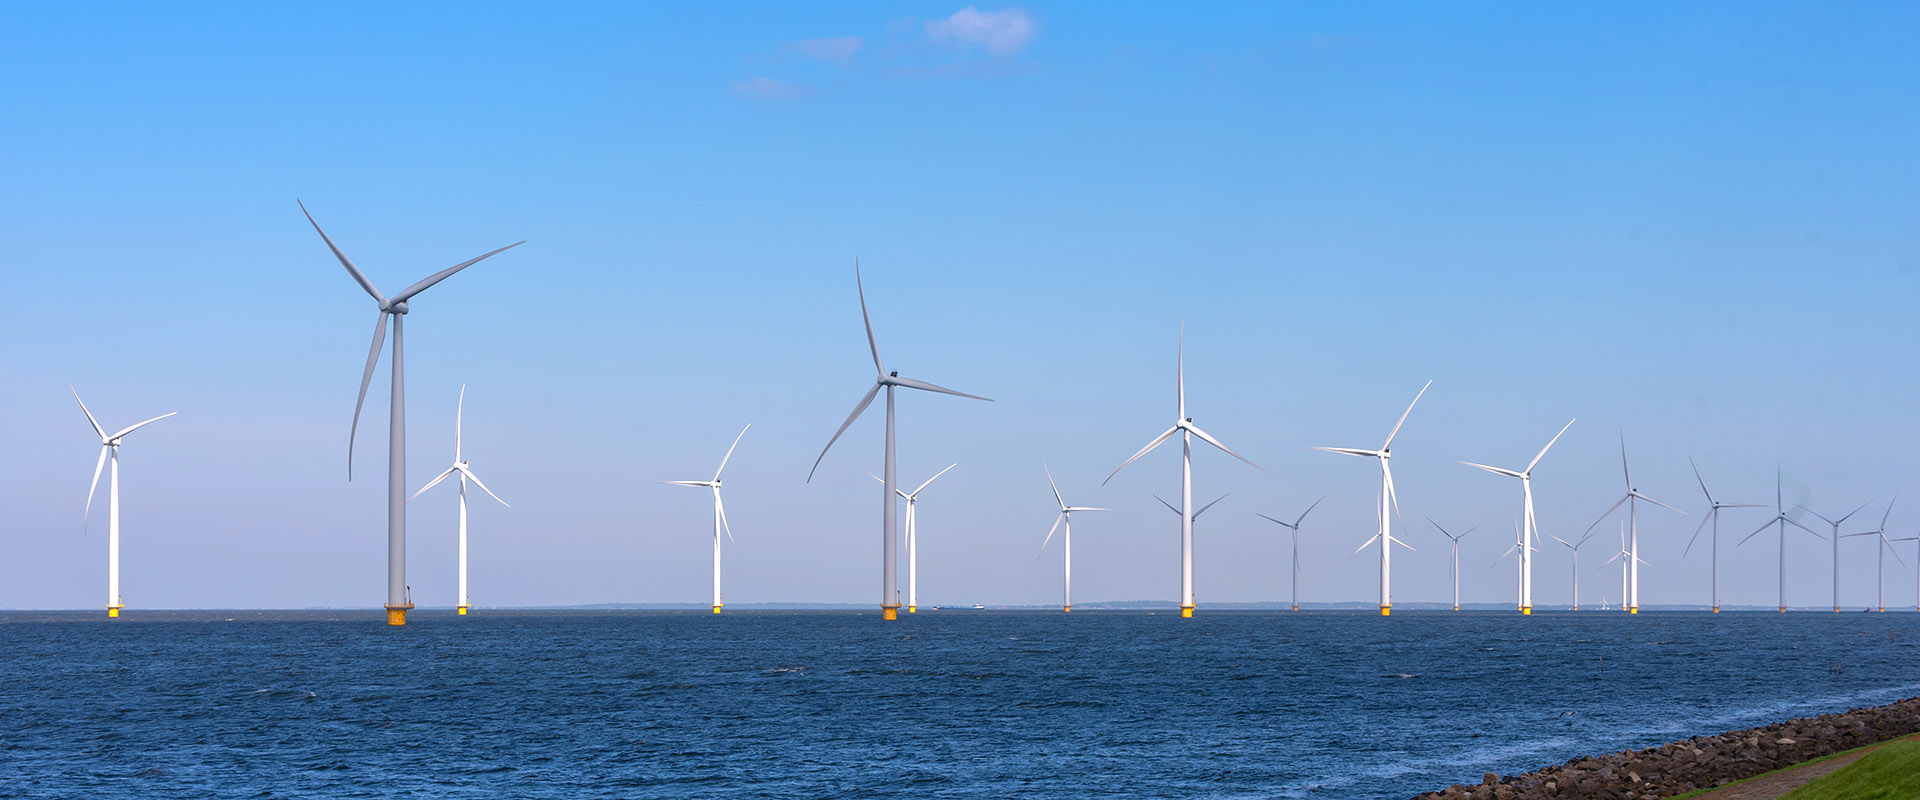 Offshore windturbines | Orga